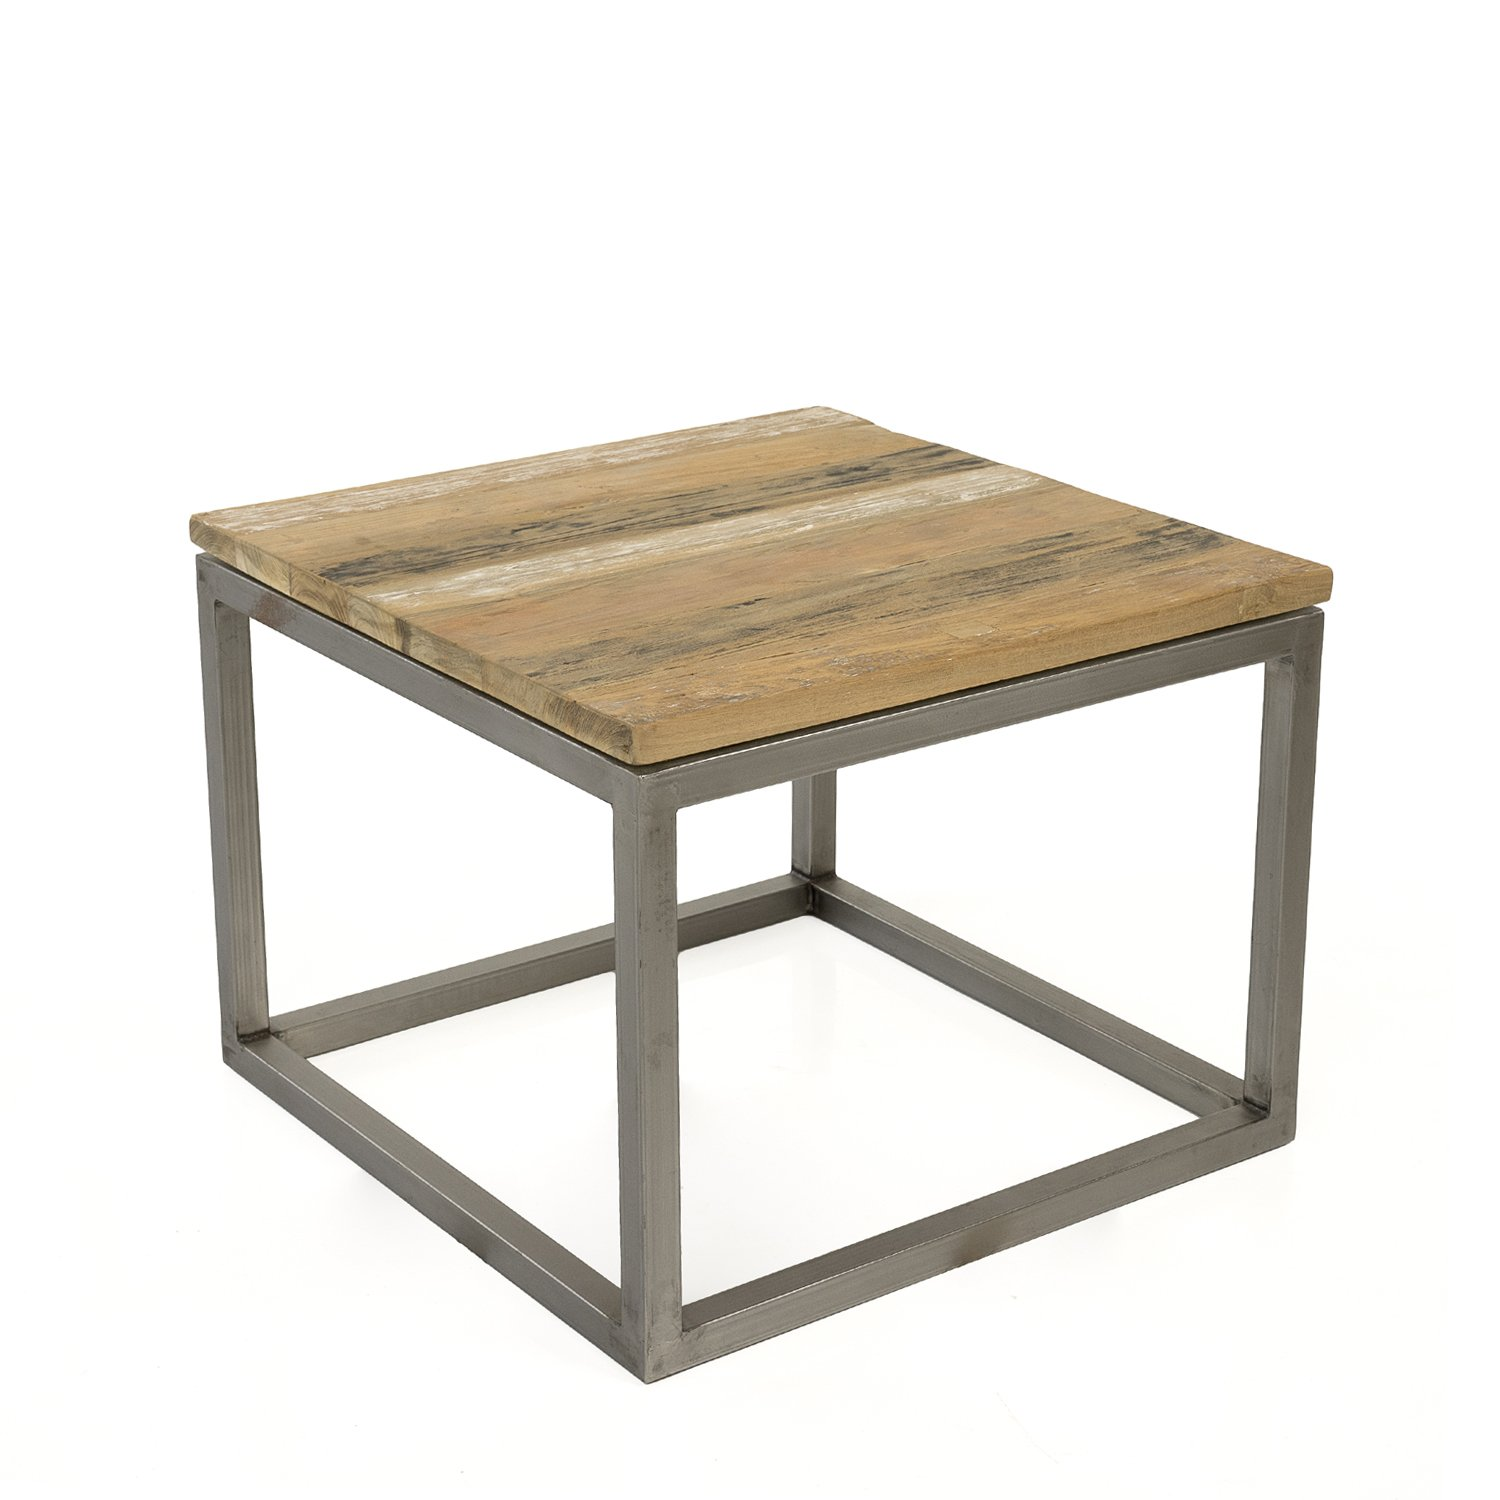 Padma's Plantation SLM06 Butlers Tables/TV Trays, Natural